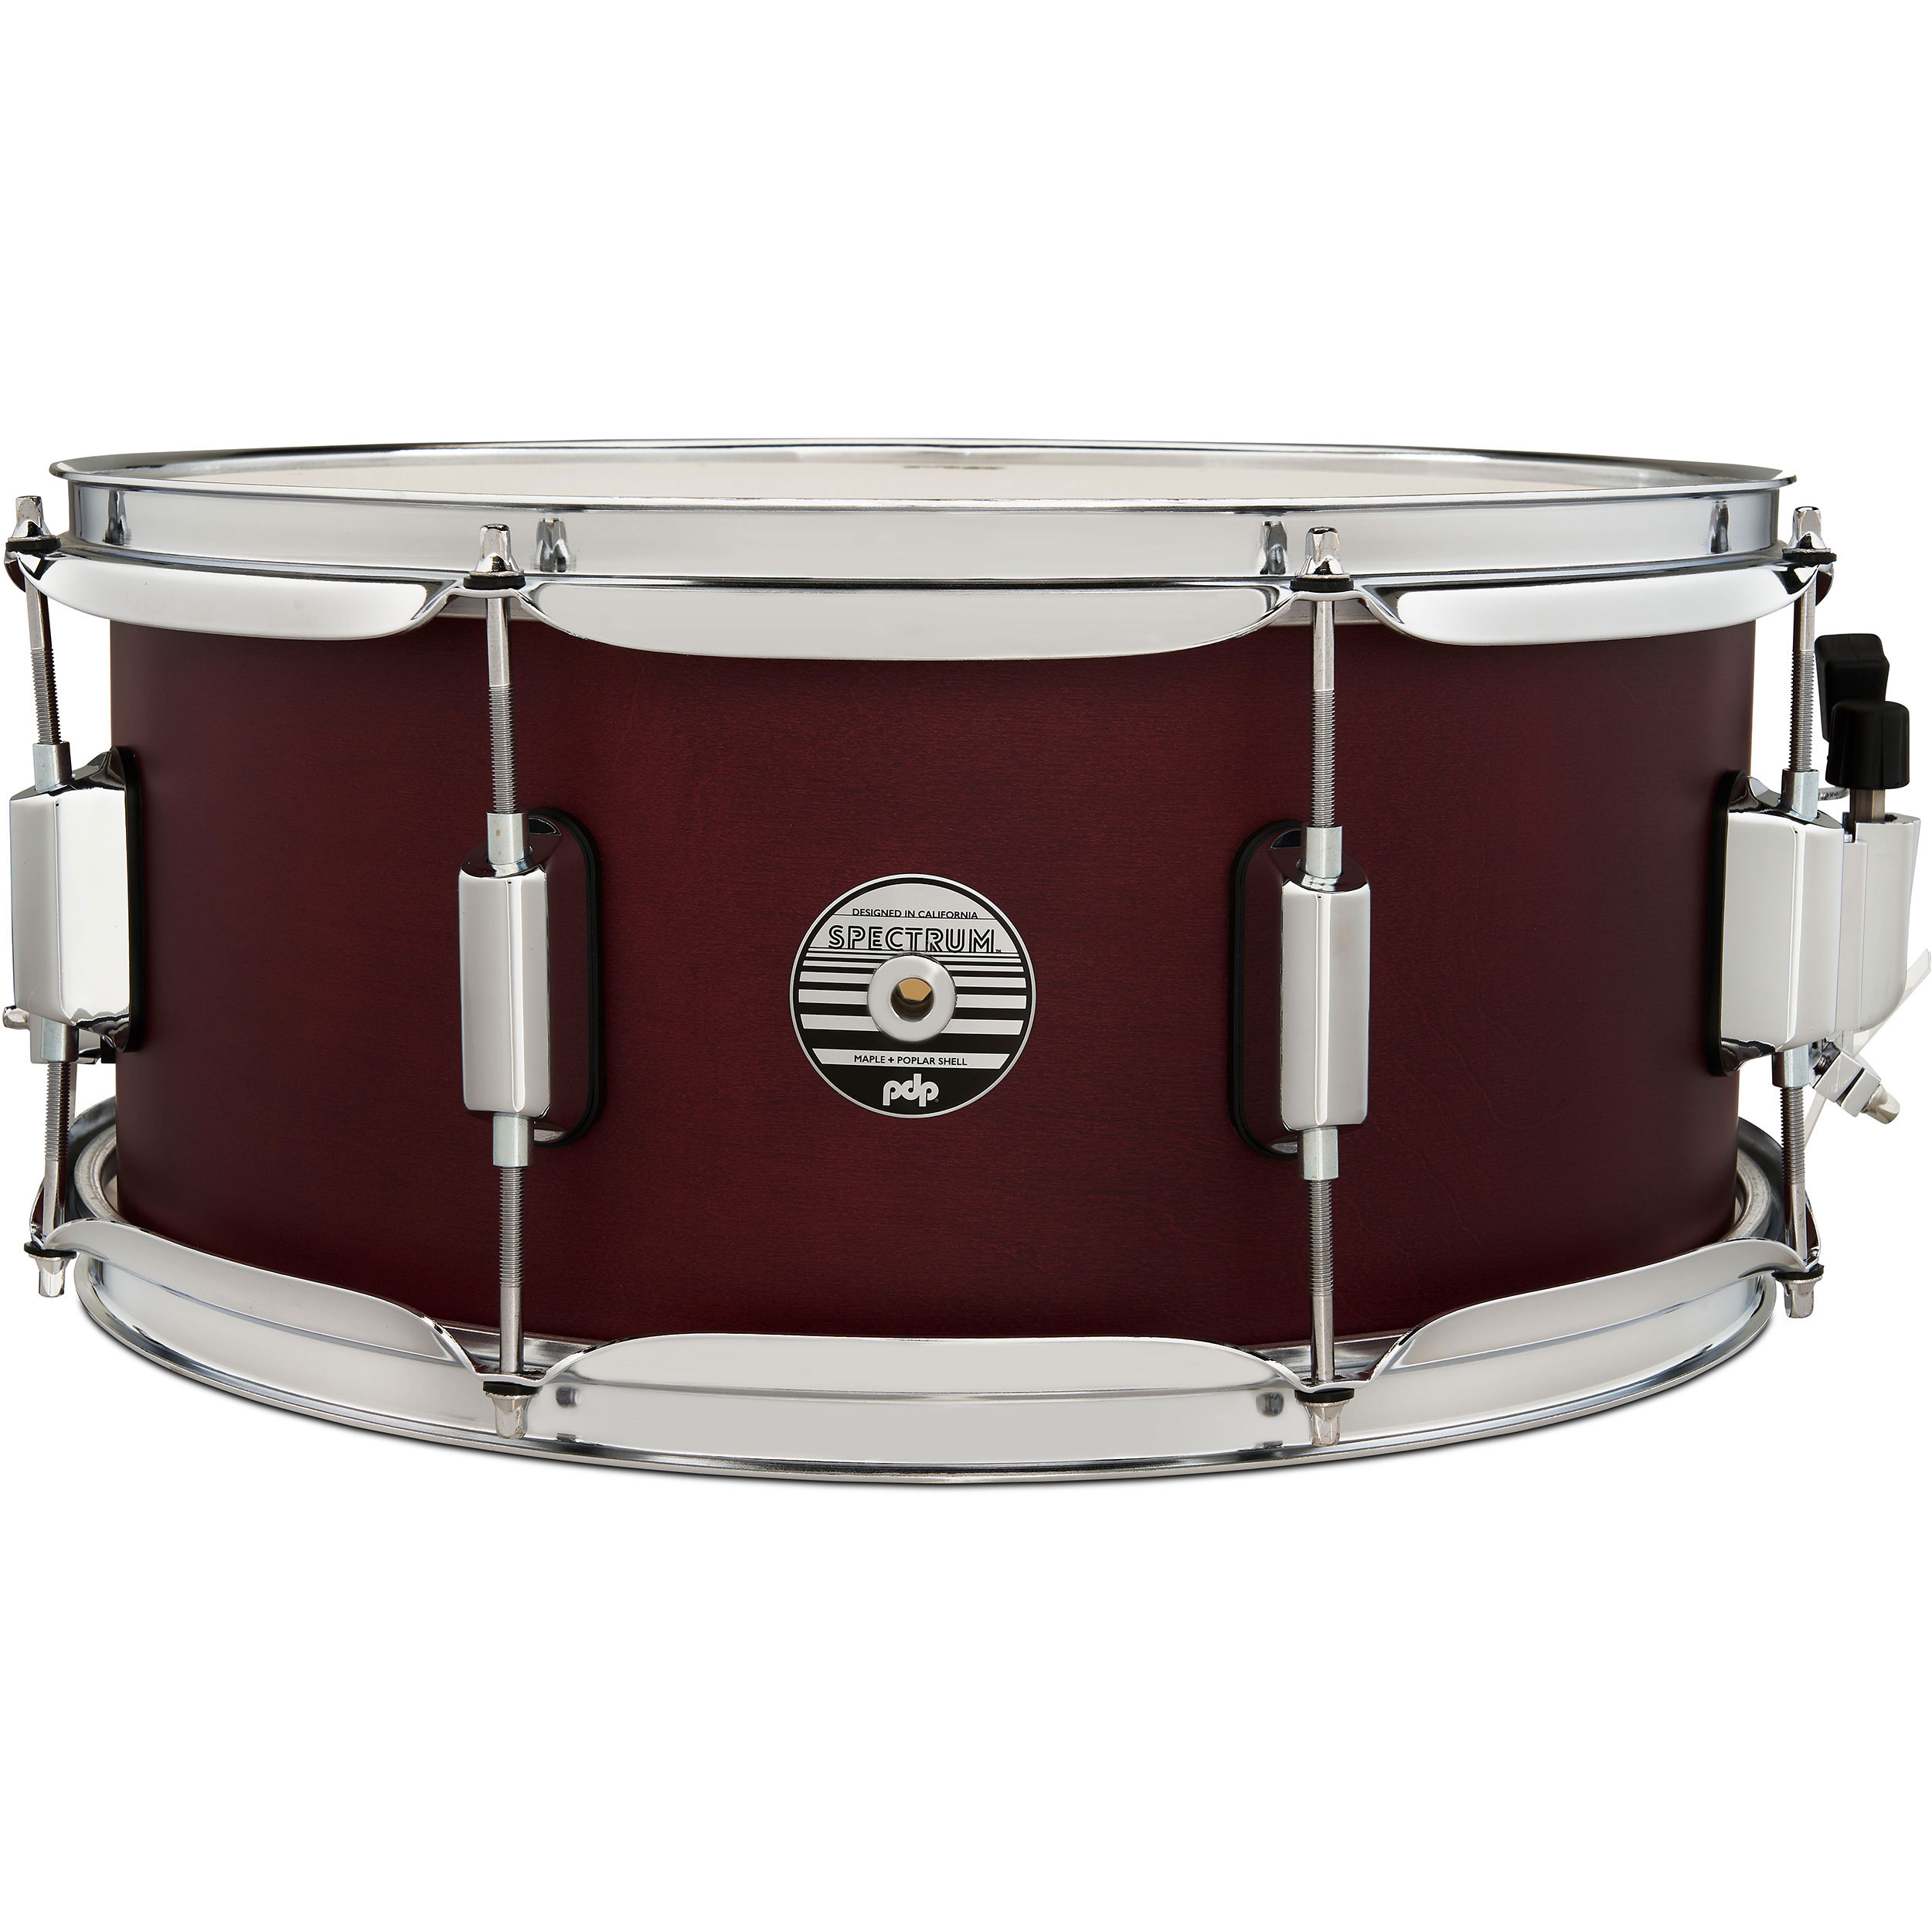 "PDP 6.5"" x 14"" Spectrum Snare Drum"